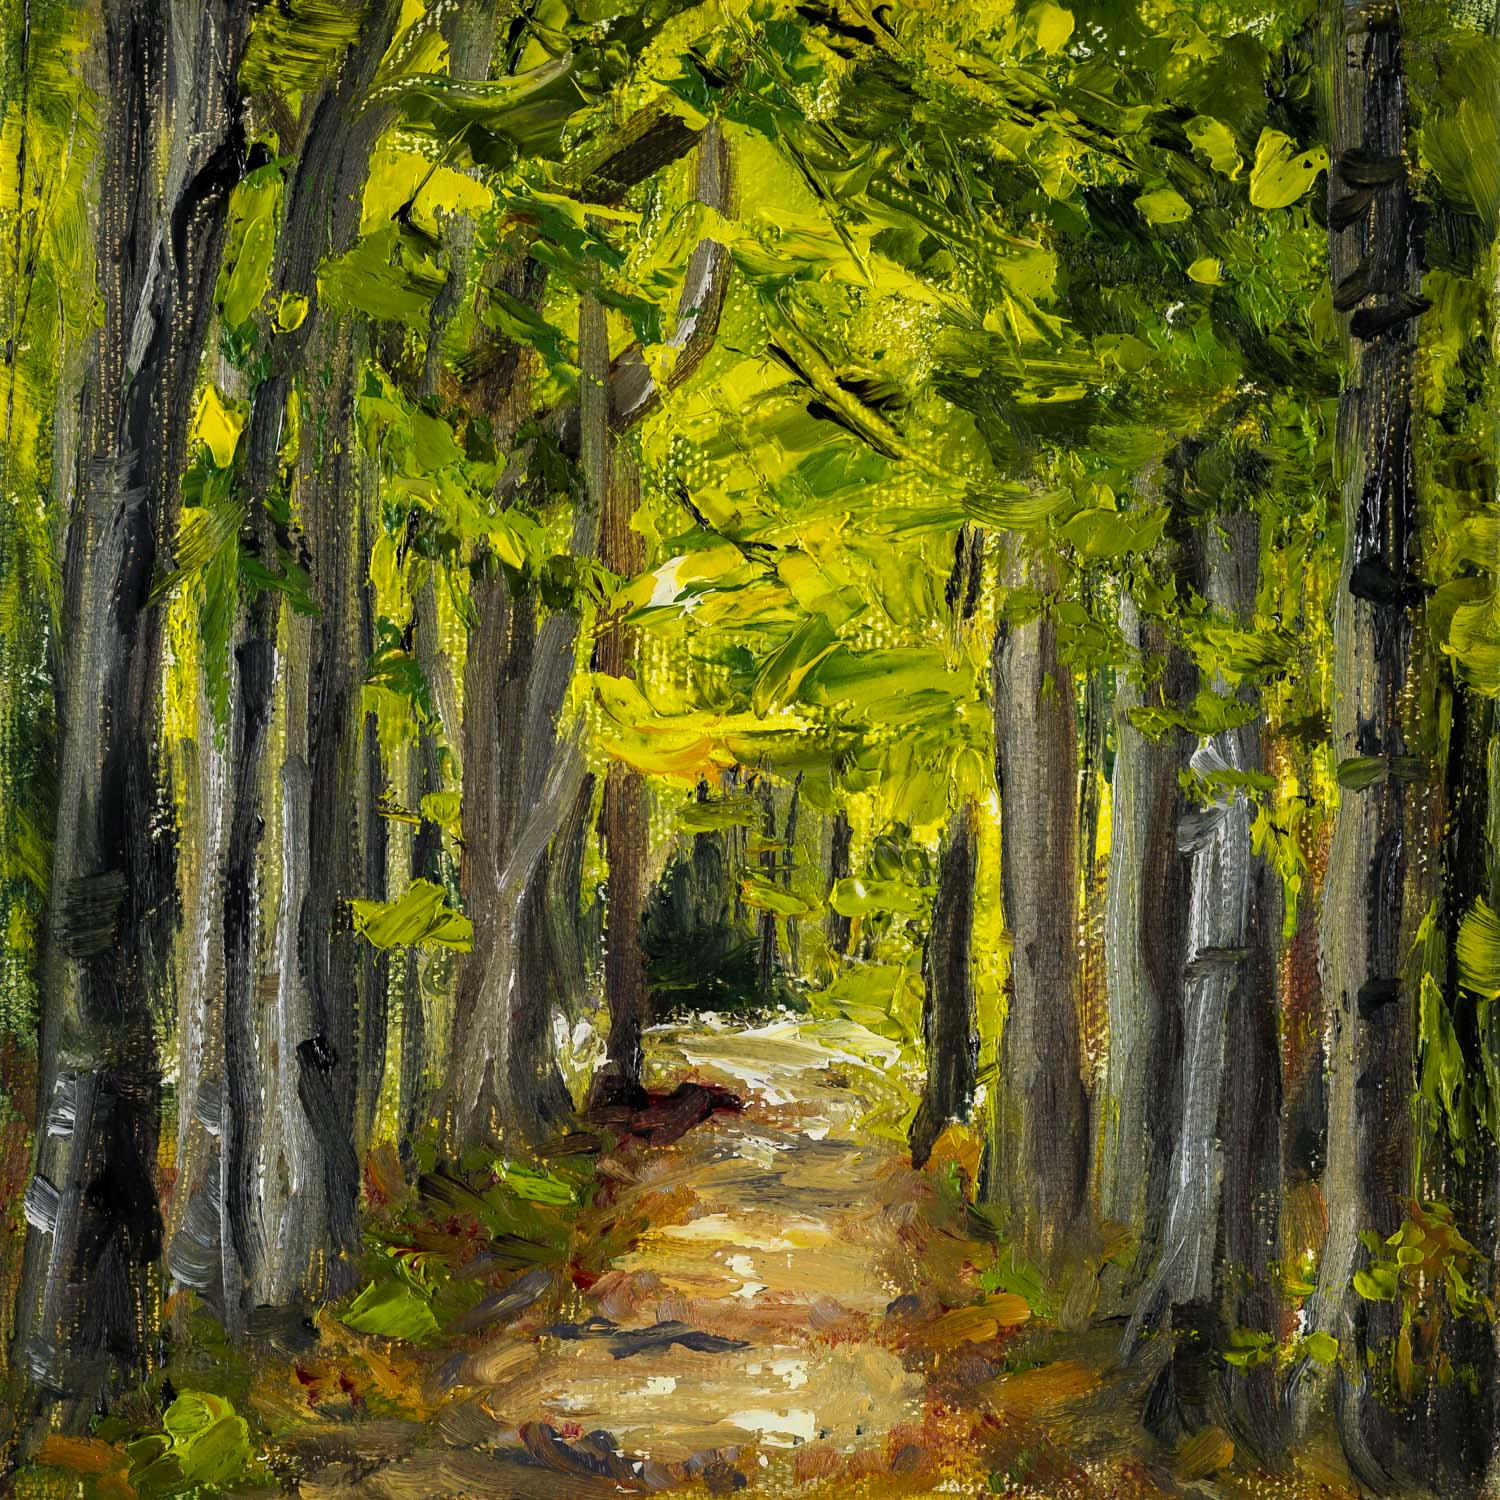 Forest Trail  6x6 inches, oil on canvas  SOLD